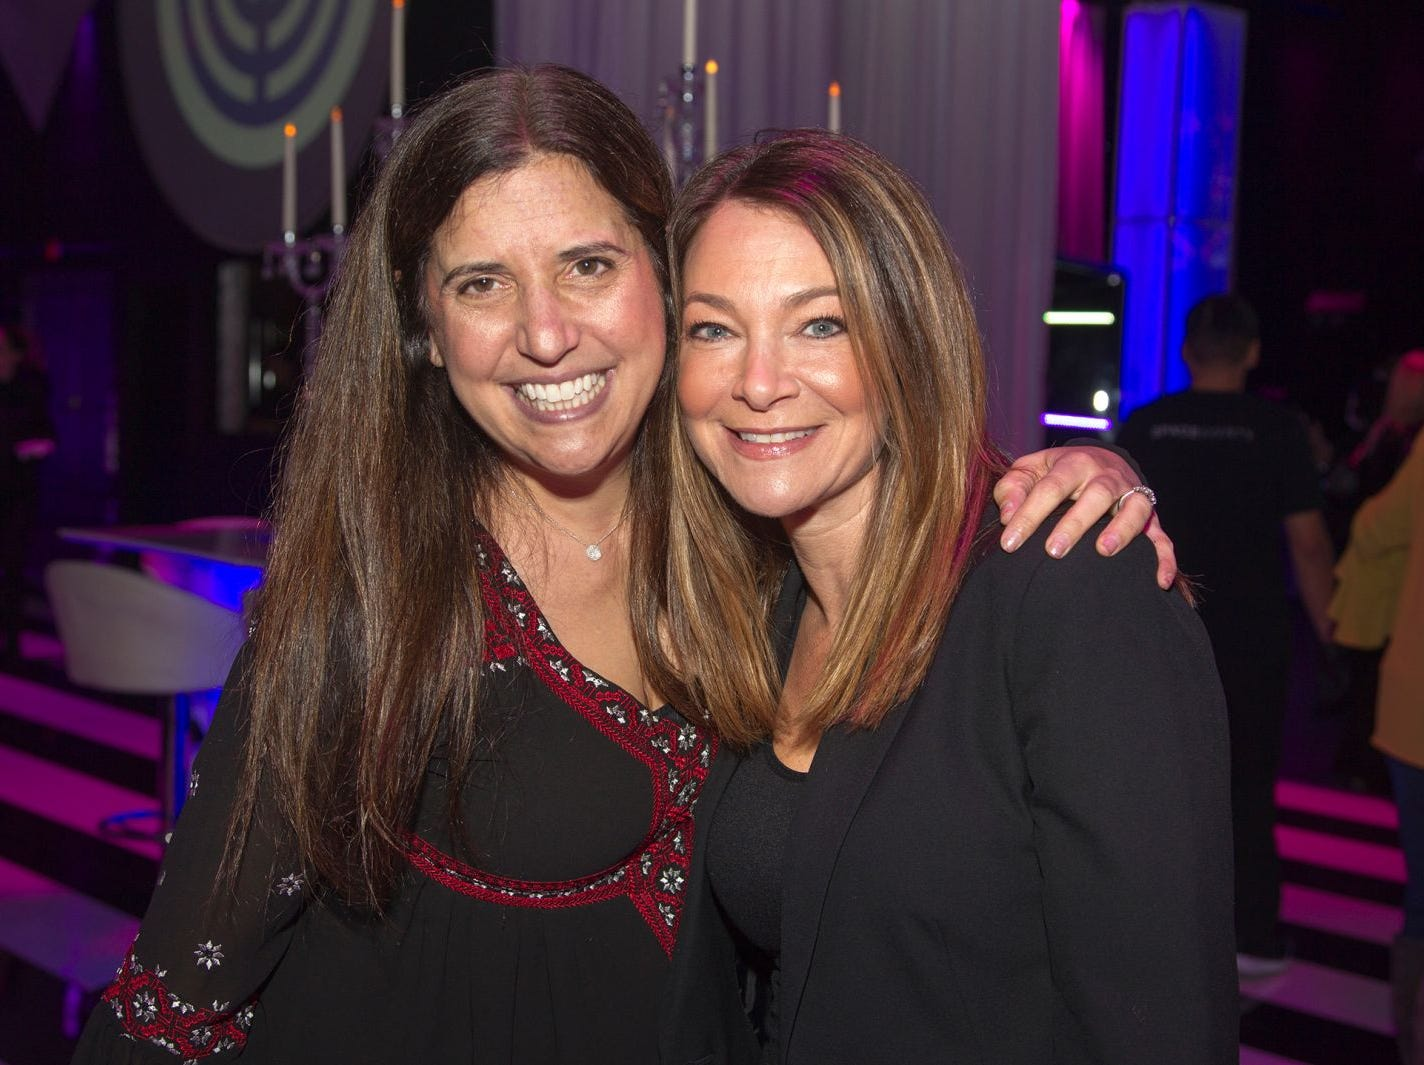 Julie Fein, Allison Breitstein. Jewish Federation of Northern New Jersey held its first Girl's Night Out dance party at Space in Englewood. 01/24/2019